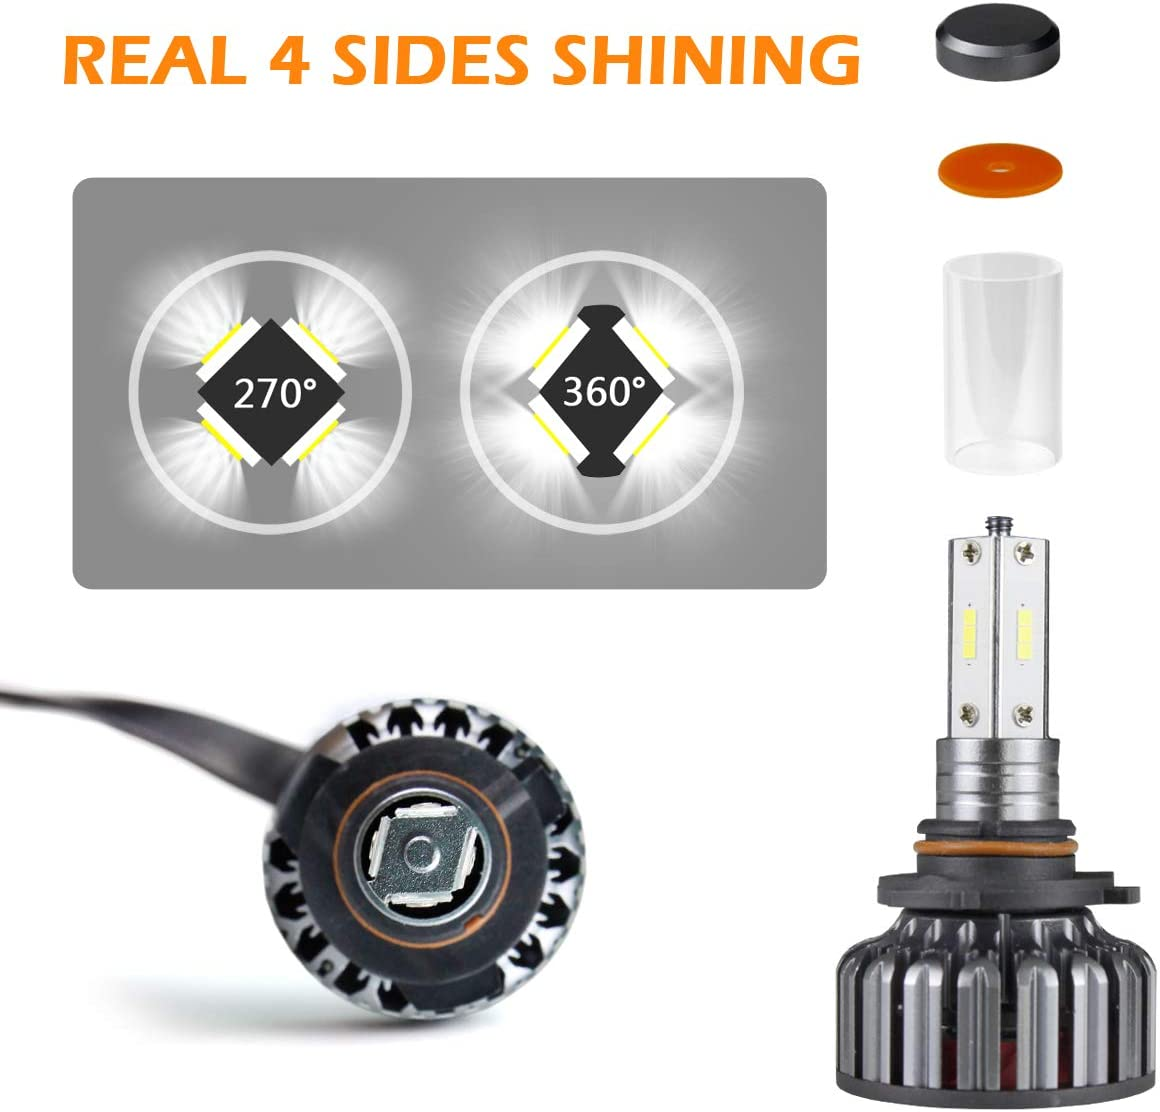 H4//9003//HB2 Hi//lo Beam Conversion Kits 96W 8000LM 4 Side CSP LED Headlignts with Fan 6000K Foglights Car Truck Driving Headlamp Replacement Adjustable Beam Pattern Ultra Bright Led Light Bulbs